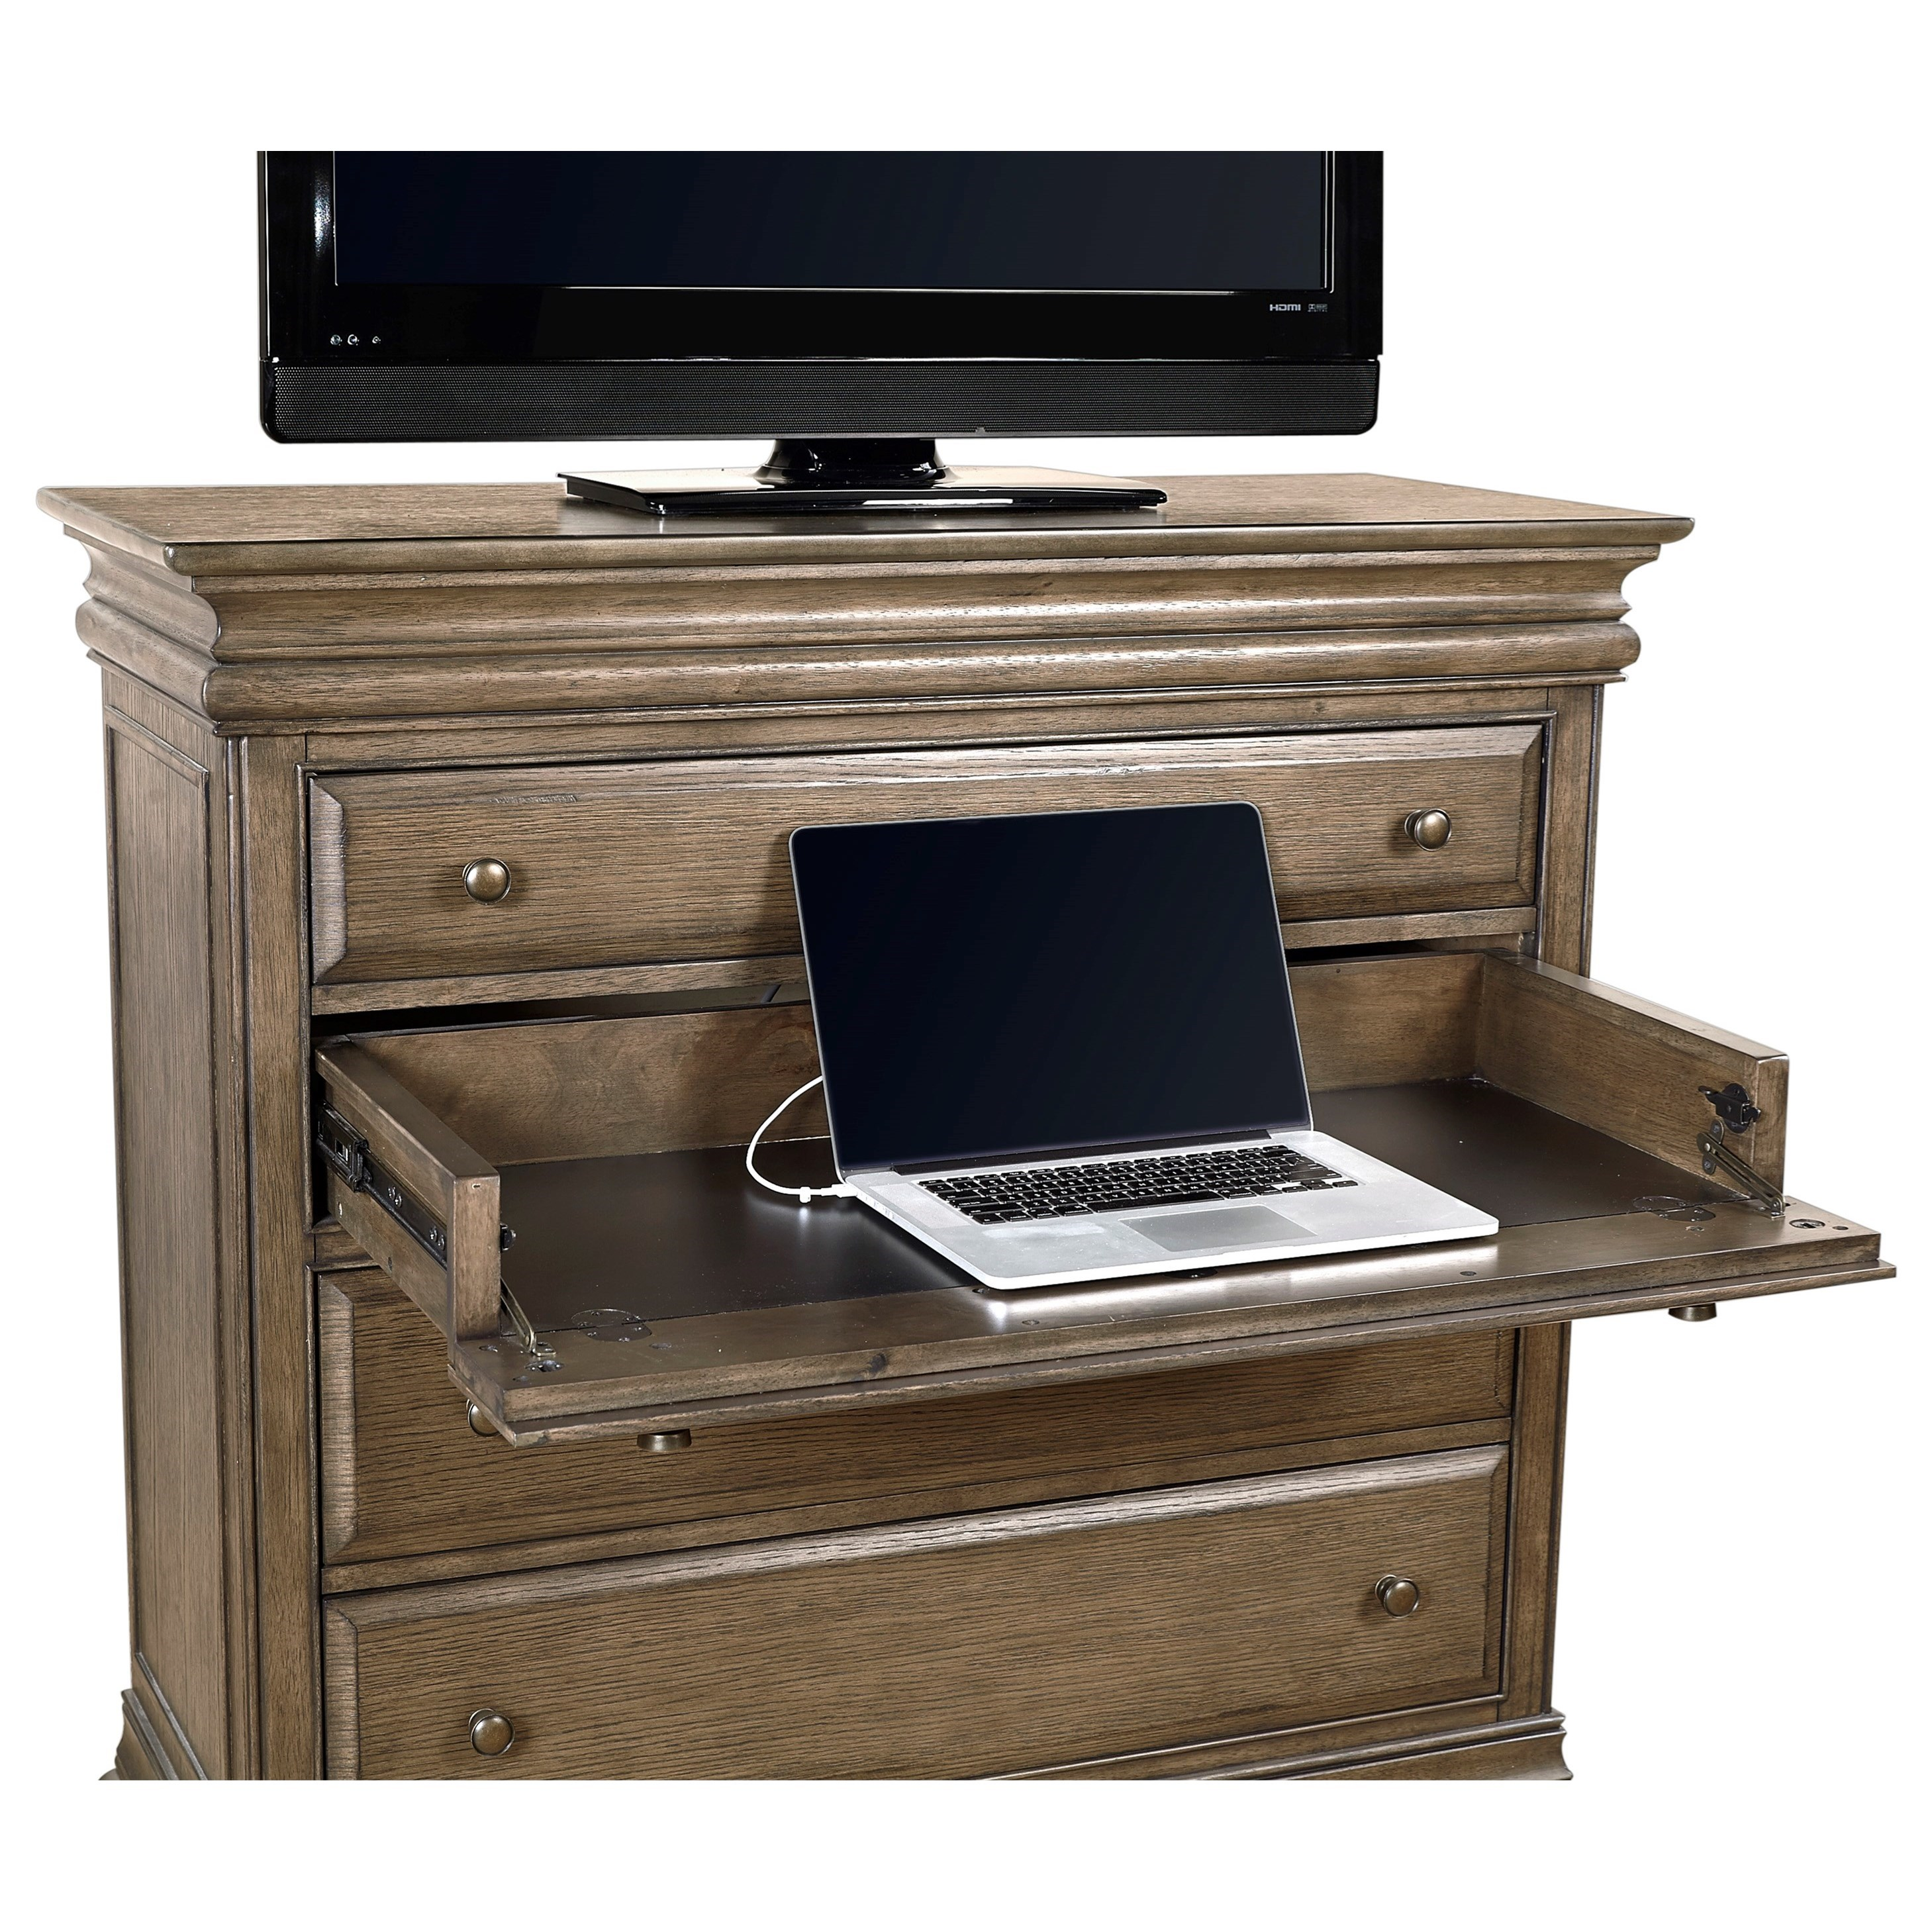 Aspenhome Arcadia Media Chest With Outlets Belfort Furniture Media Chests